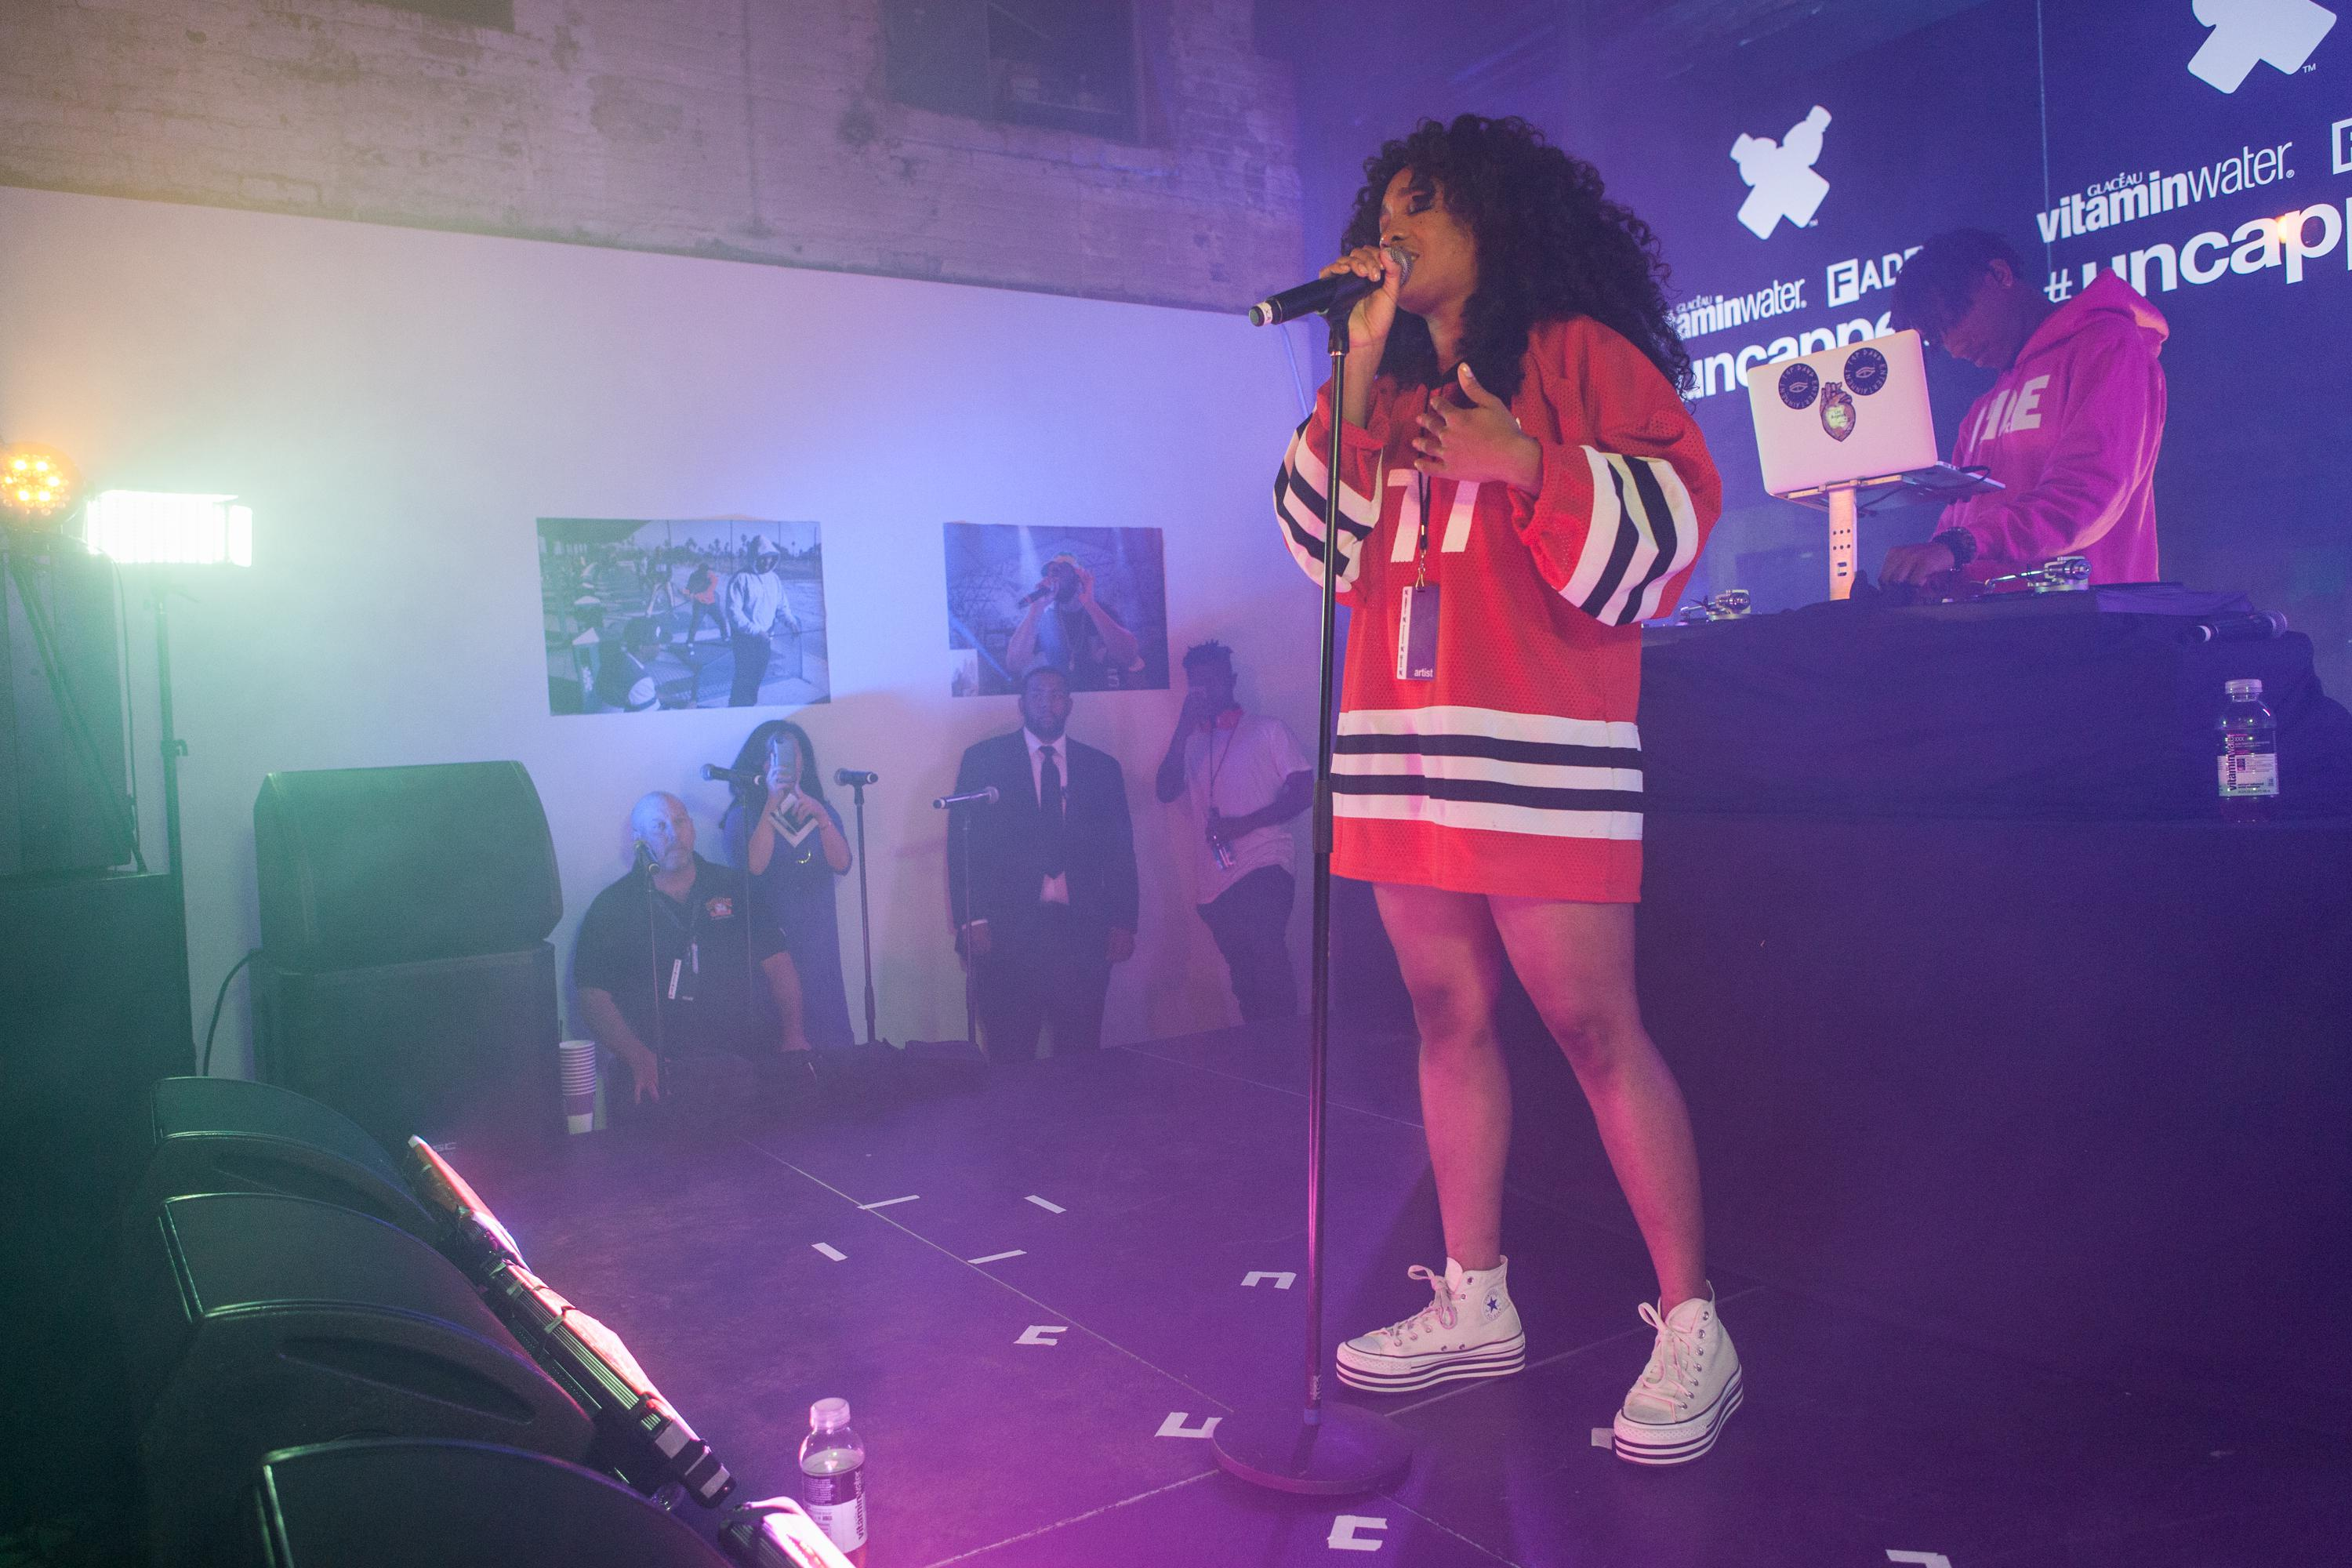 vitaminwater And The Fader Present uncapped With Schoolboy Q